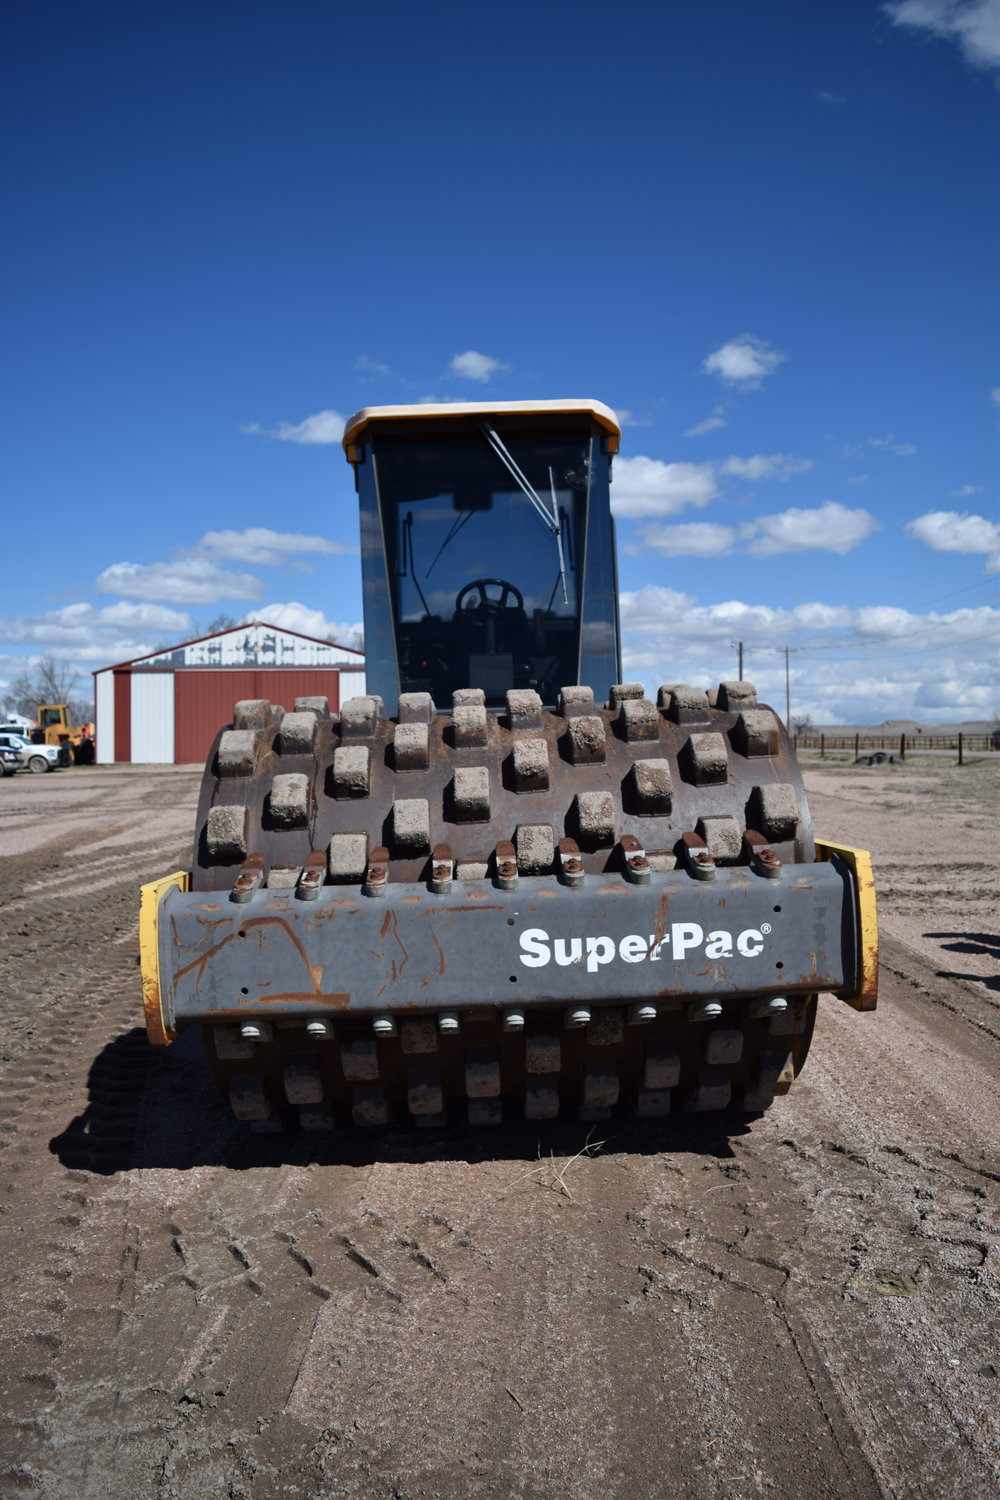 Super Pac 8410 sheep foot packer, 1,112 hrs., Cummins diesel